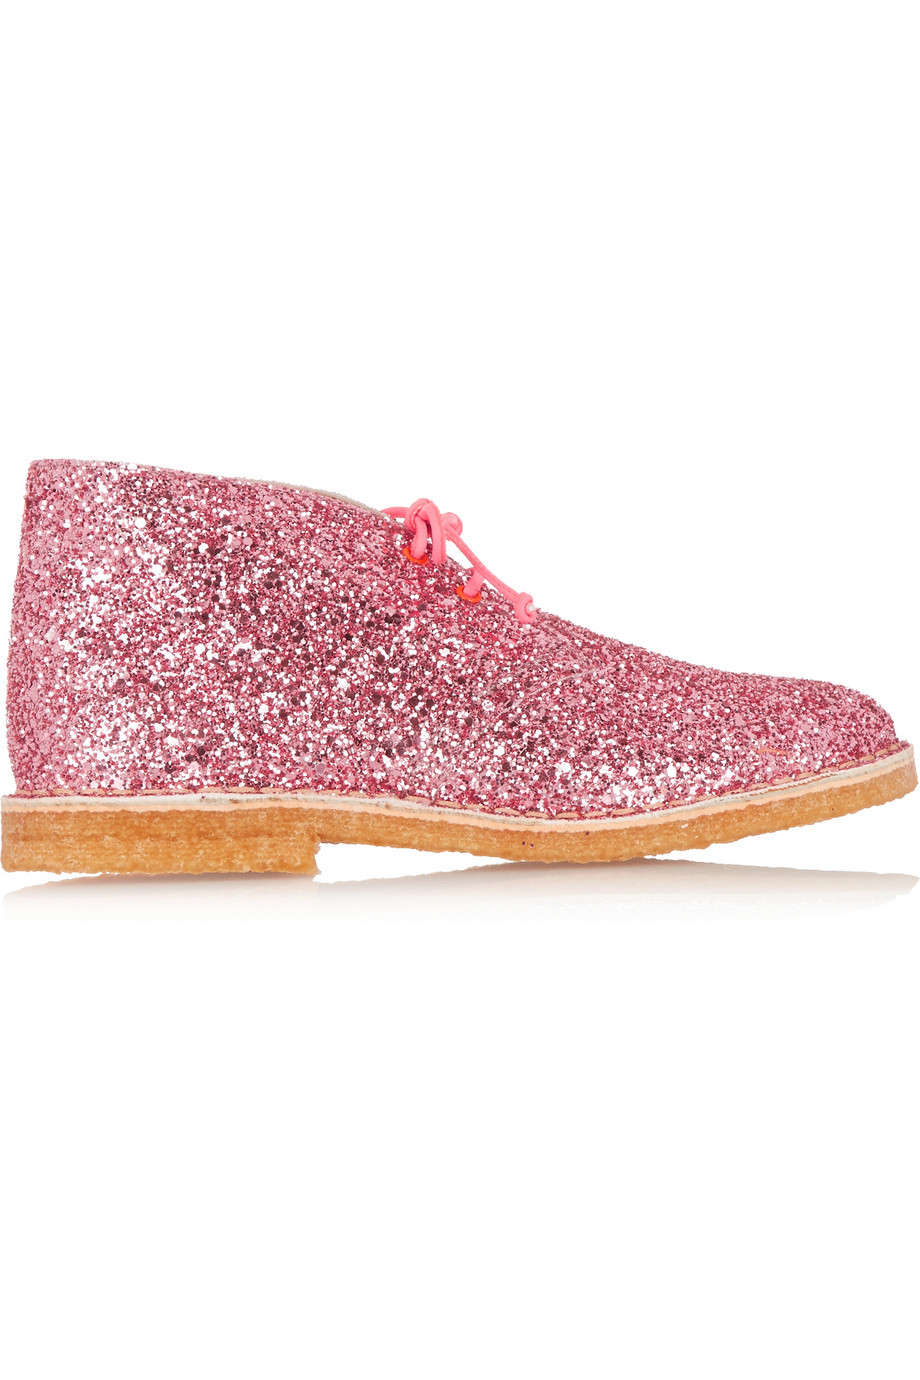 Sophia Webster  desert boots - was $325, now $228